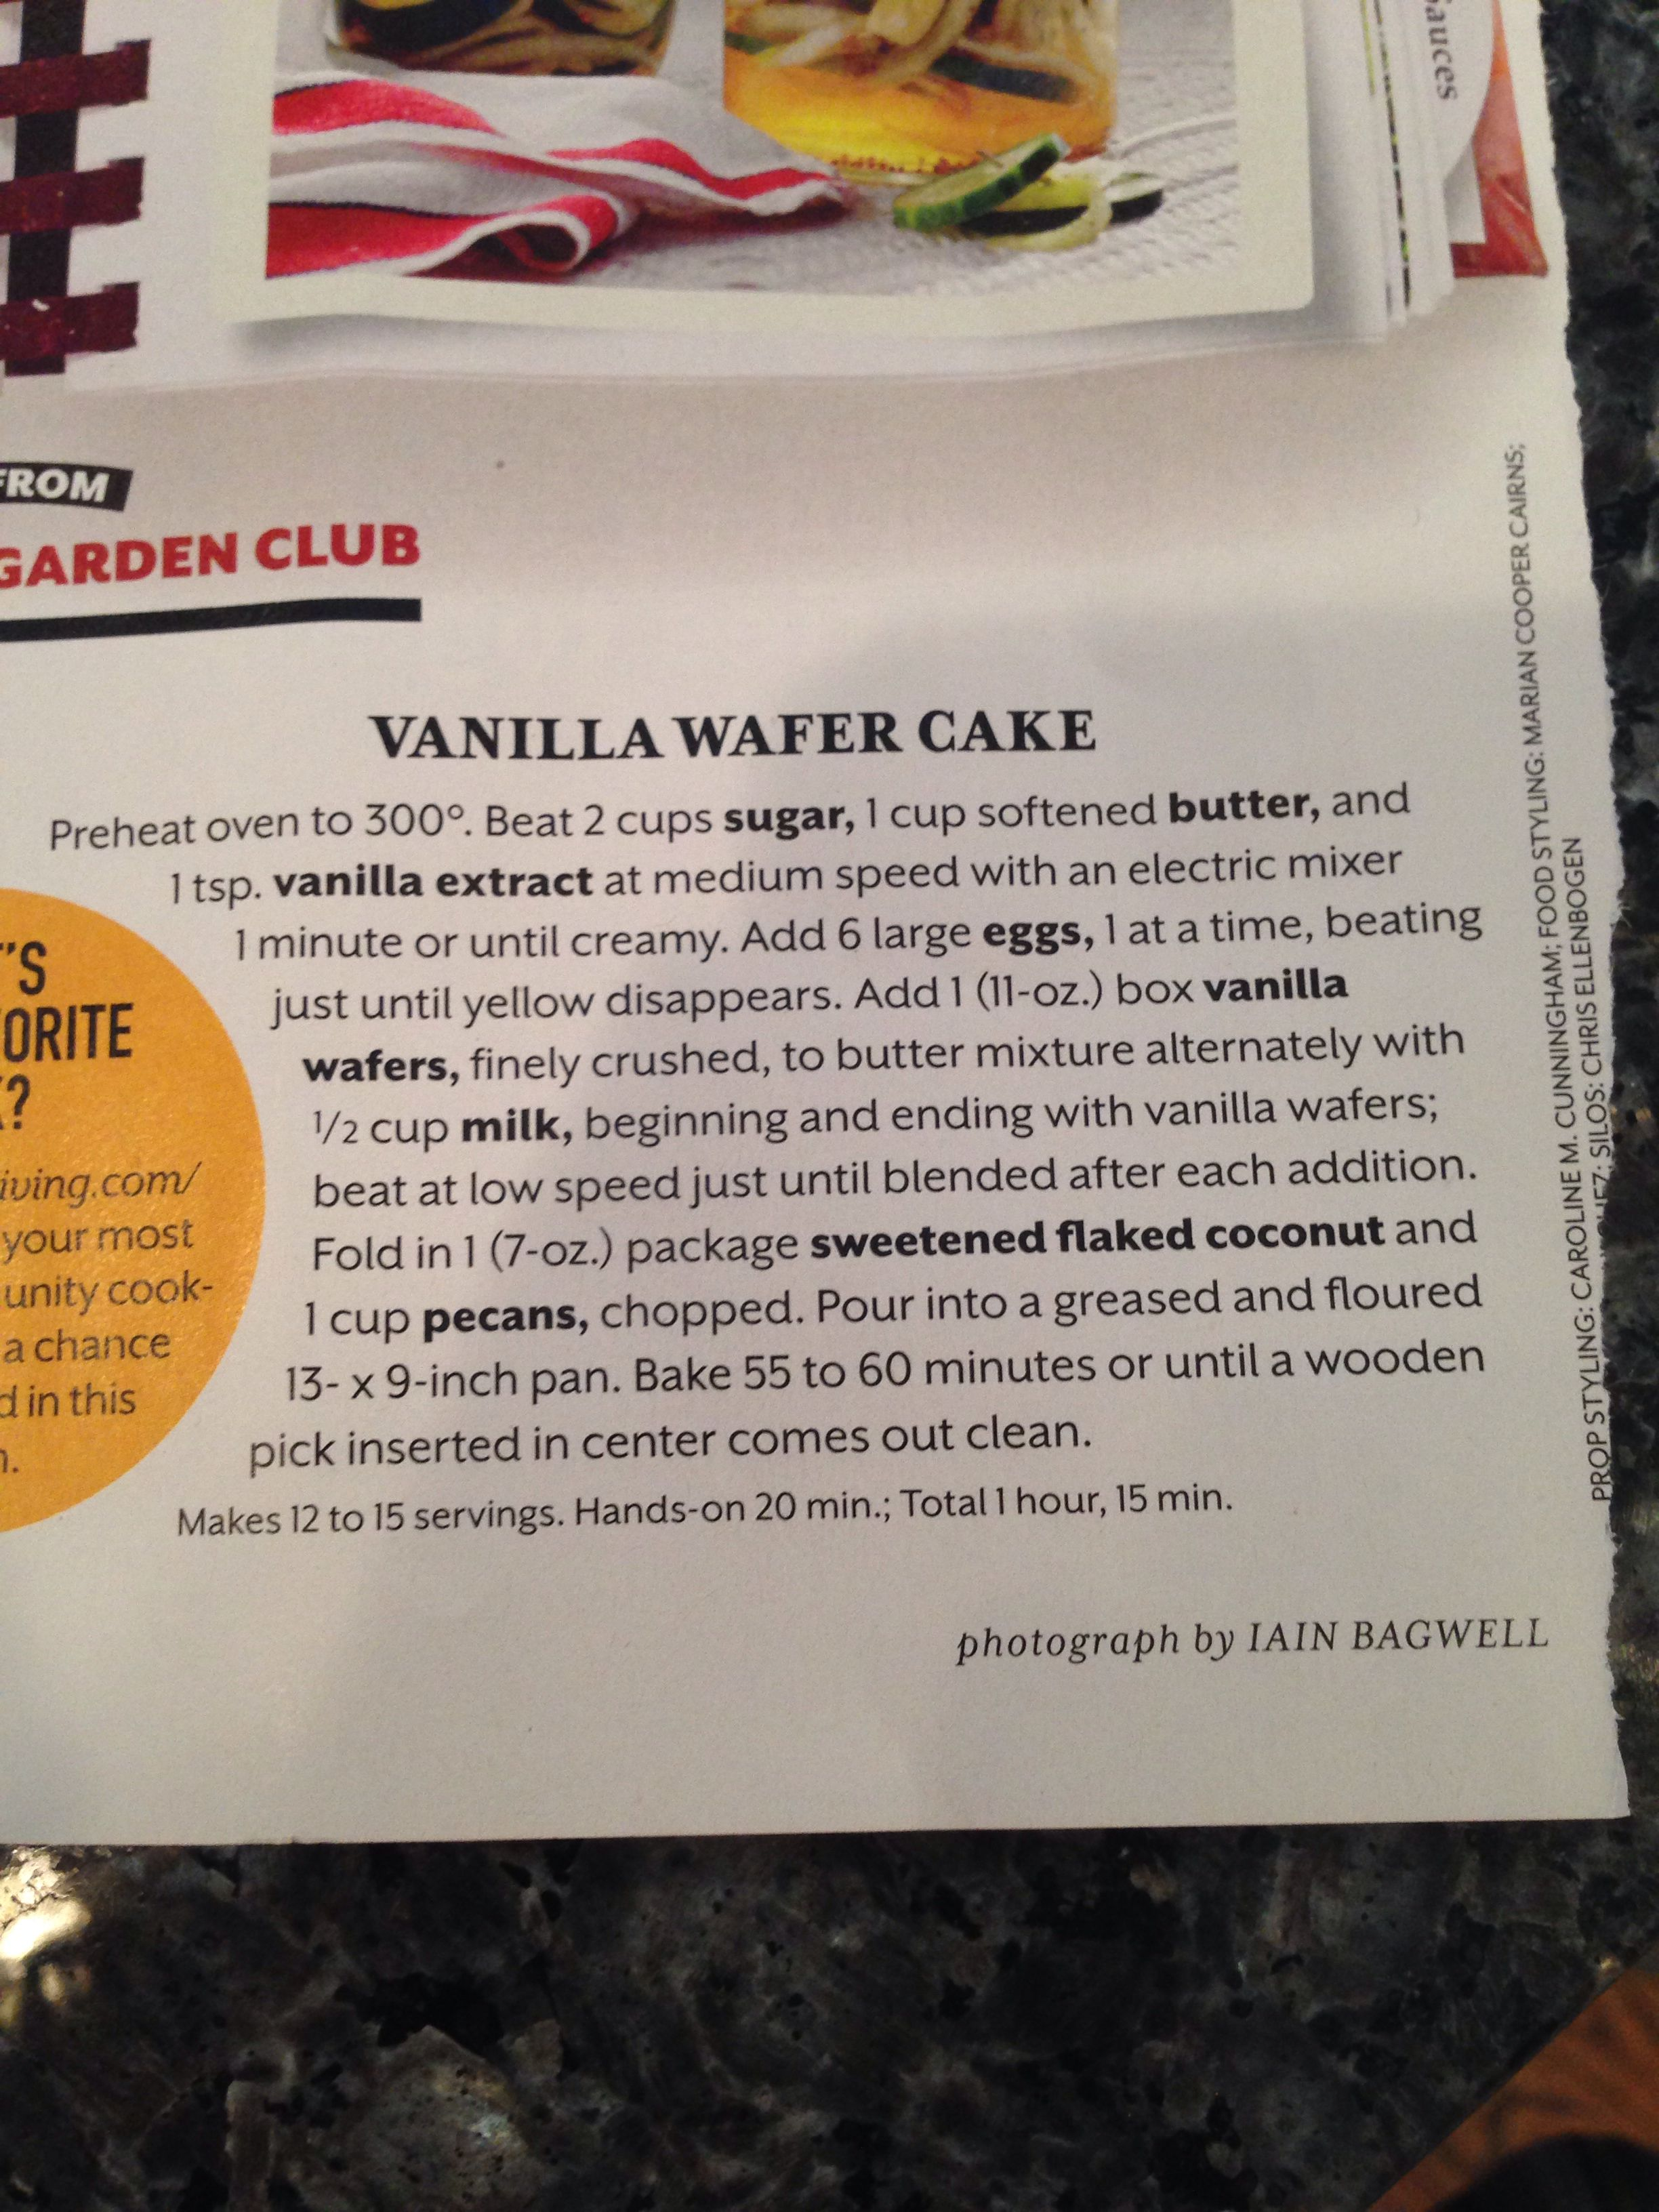 Vanilla Wafer Cake From Southern Living I Saw This Too And It Looks Fantastic Vanilla Wafer Cake Vanilla Wafers Sweets Cake